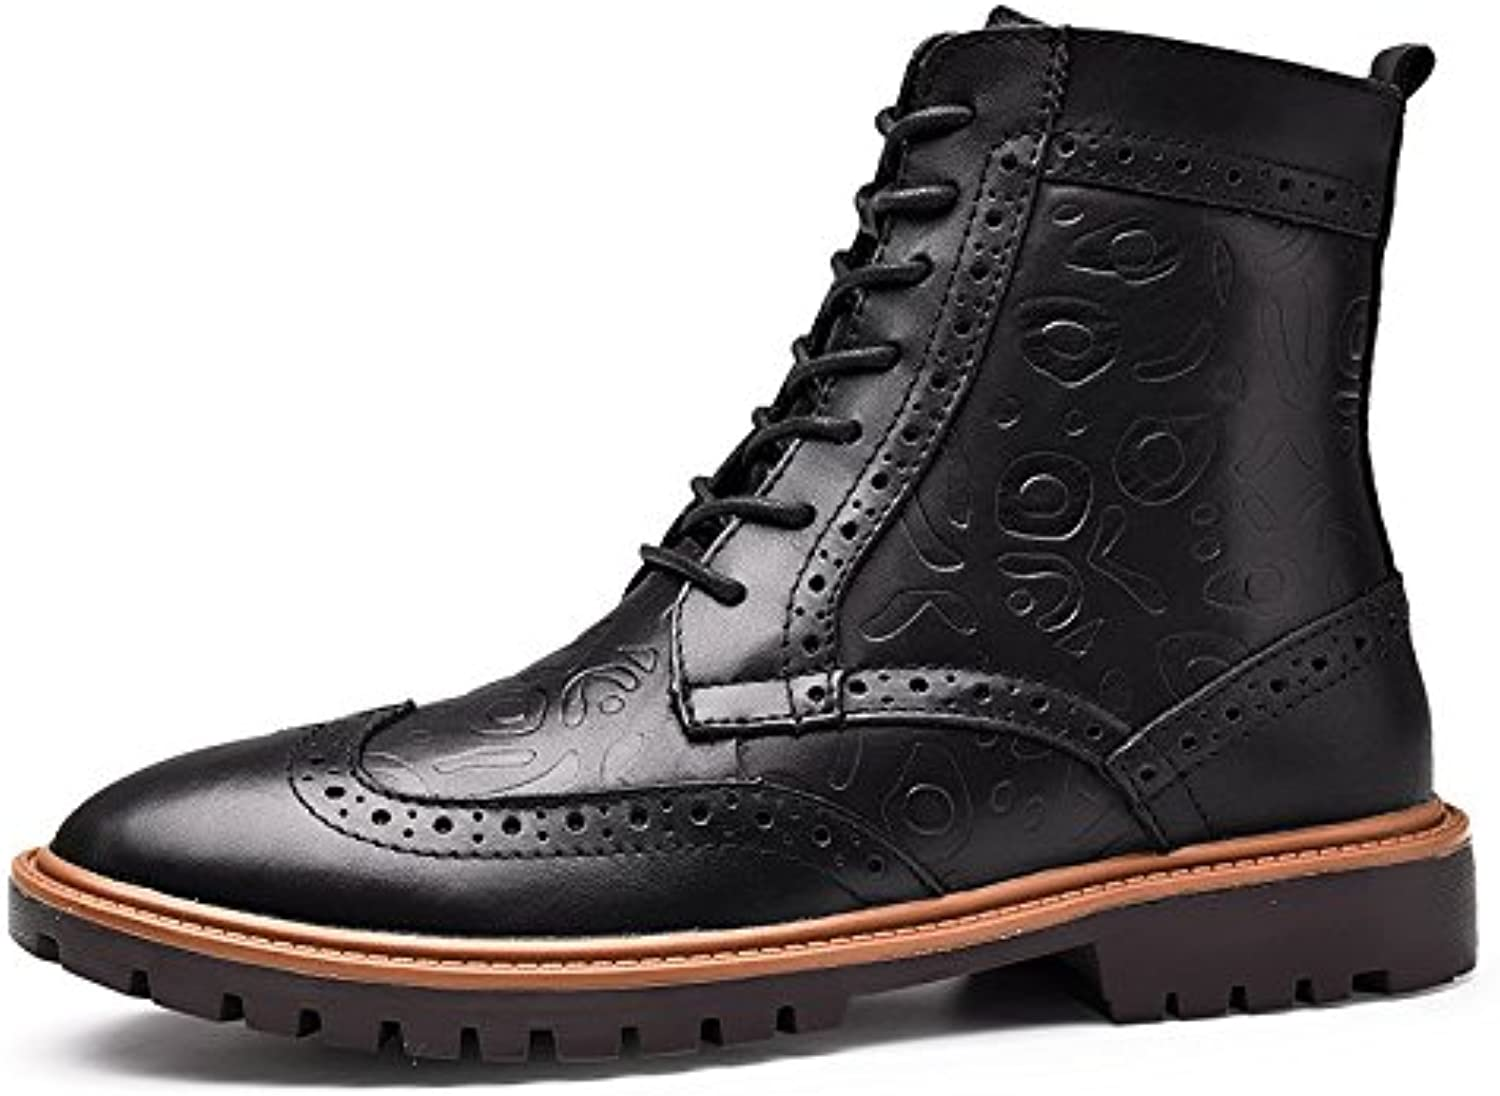 NBWE New Male Boots High Top Lederstiefel Martin Stiefel Schuhe Casual Lace ups Formelle Schuhe